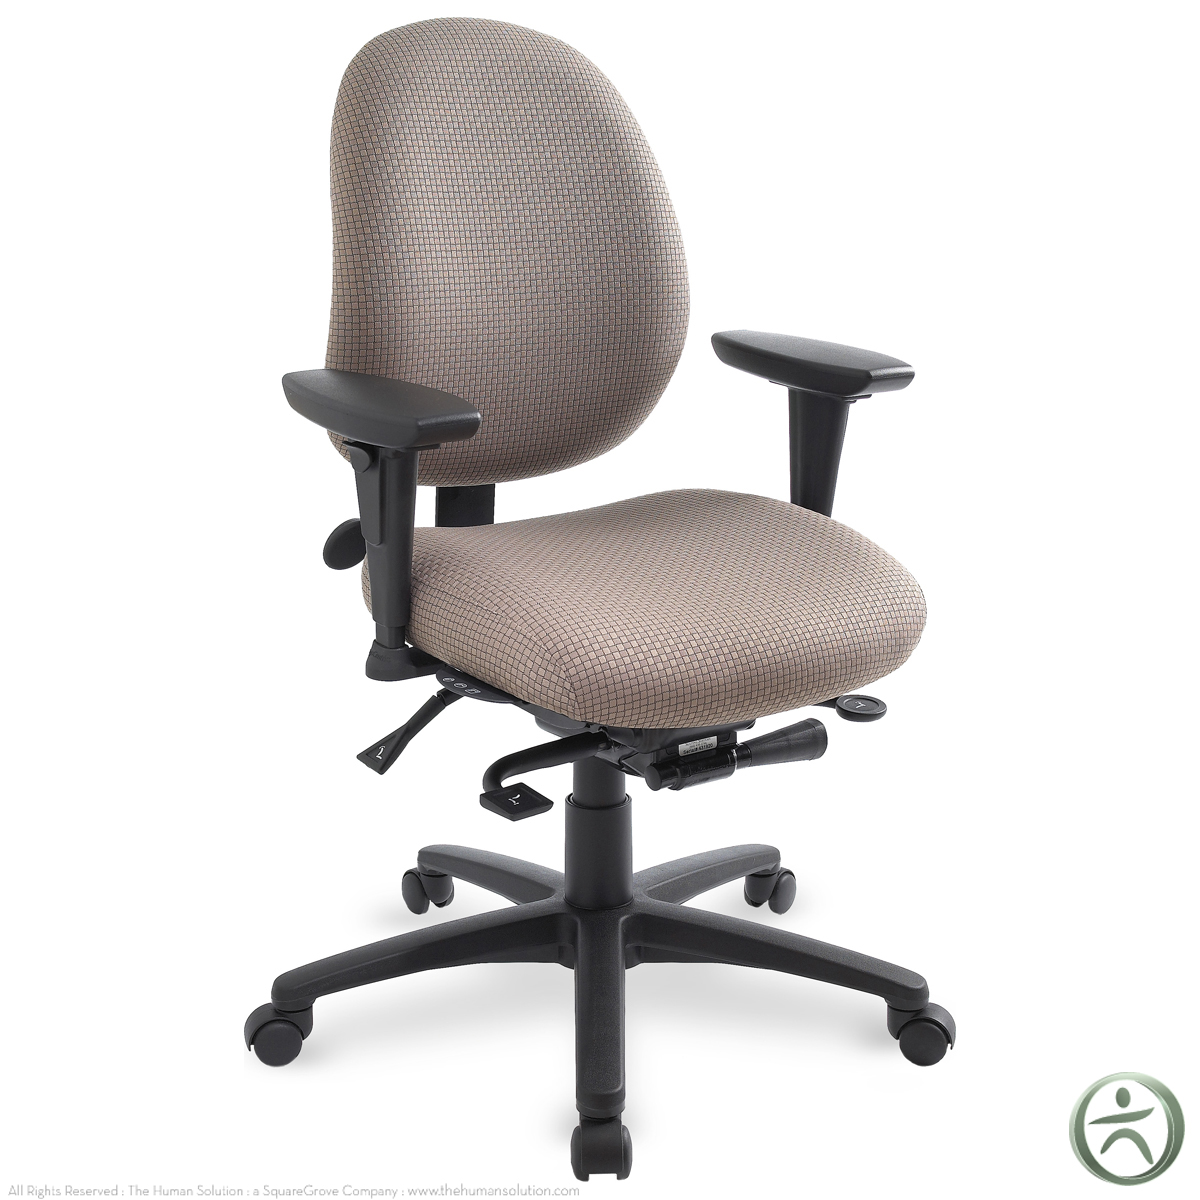 Shop Chairs Ergocentric Geocentric Task Chair Shop Ergocentric Chairs